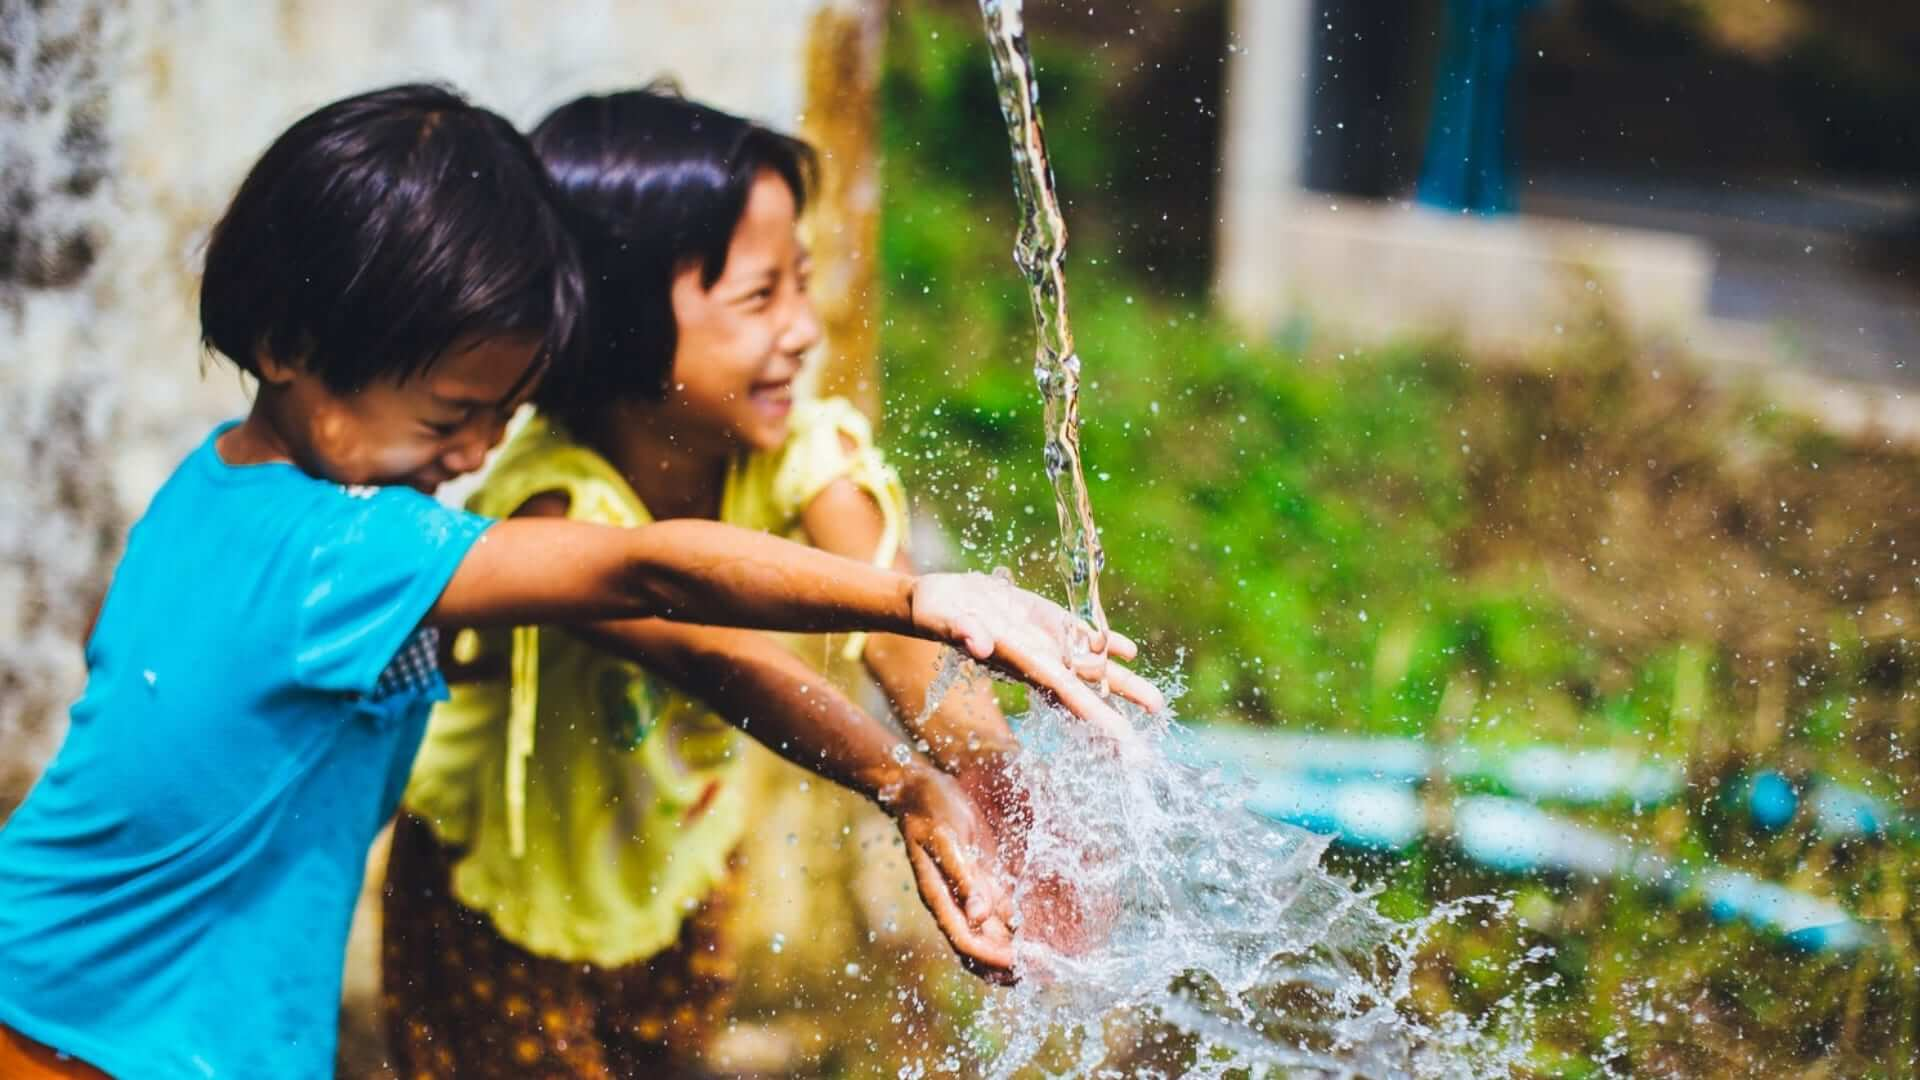 Two smiling children are holding up their hands under a jet of water in Thailand.